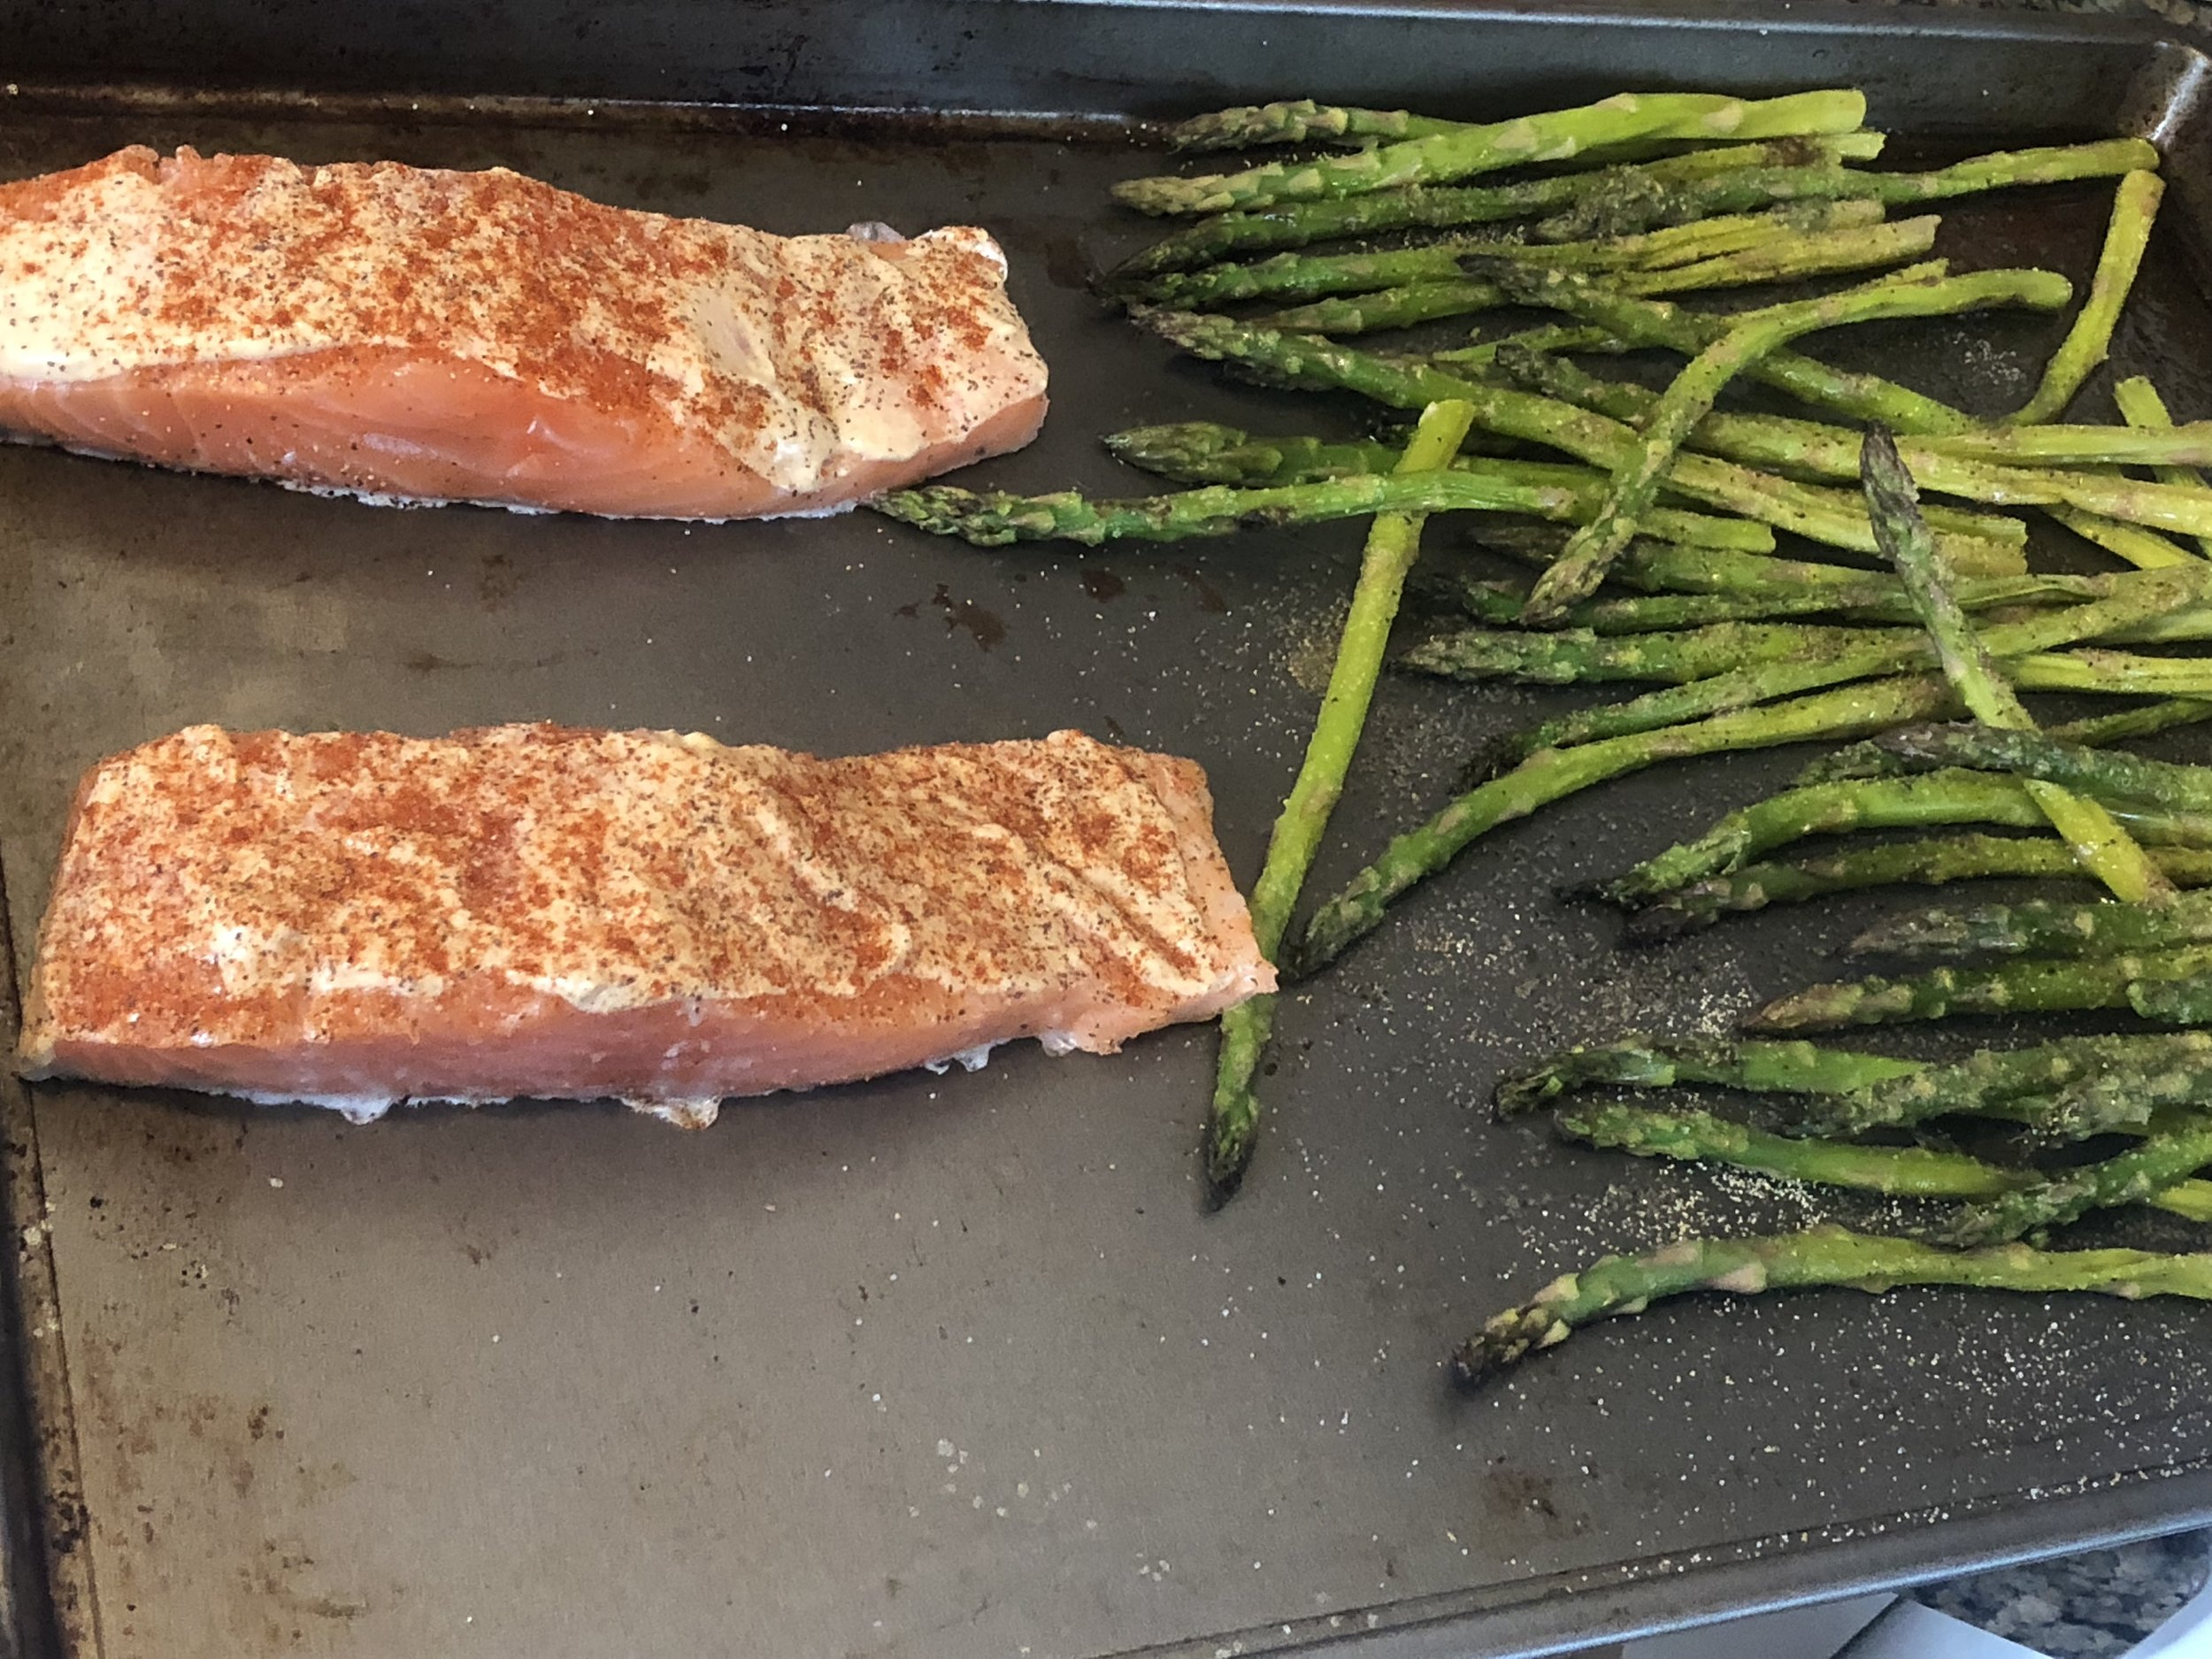 when your kitchen timer has expired, put your salmon onto the pan with the asparagus, skin side down. Cook for 15-20 minutes or until the salmon is cooked through.    My Comments: This recipe included coating the salmon with Panko and I will try this in the future, but I was concerned because the salmon was still frozen in the middle and I thought it would cook more evenly without it.